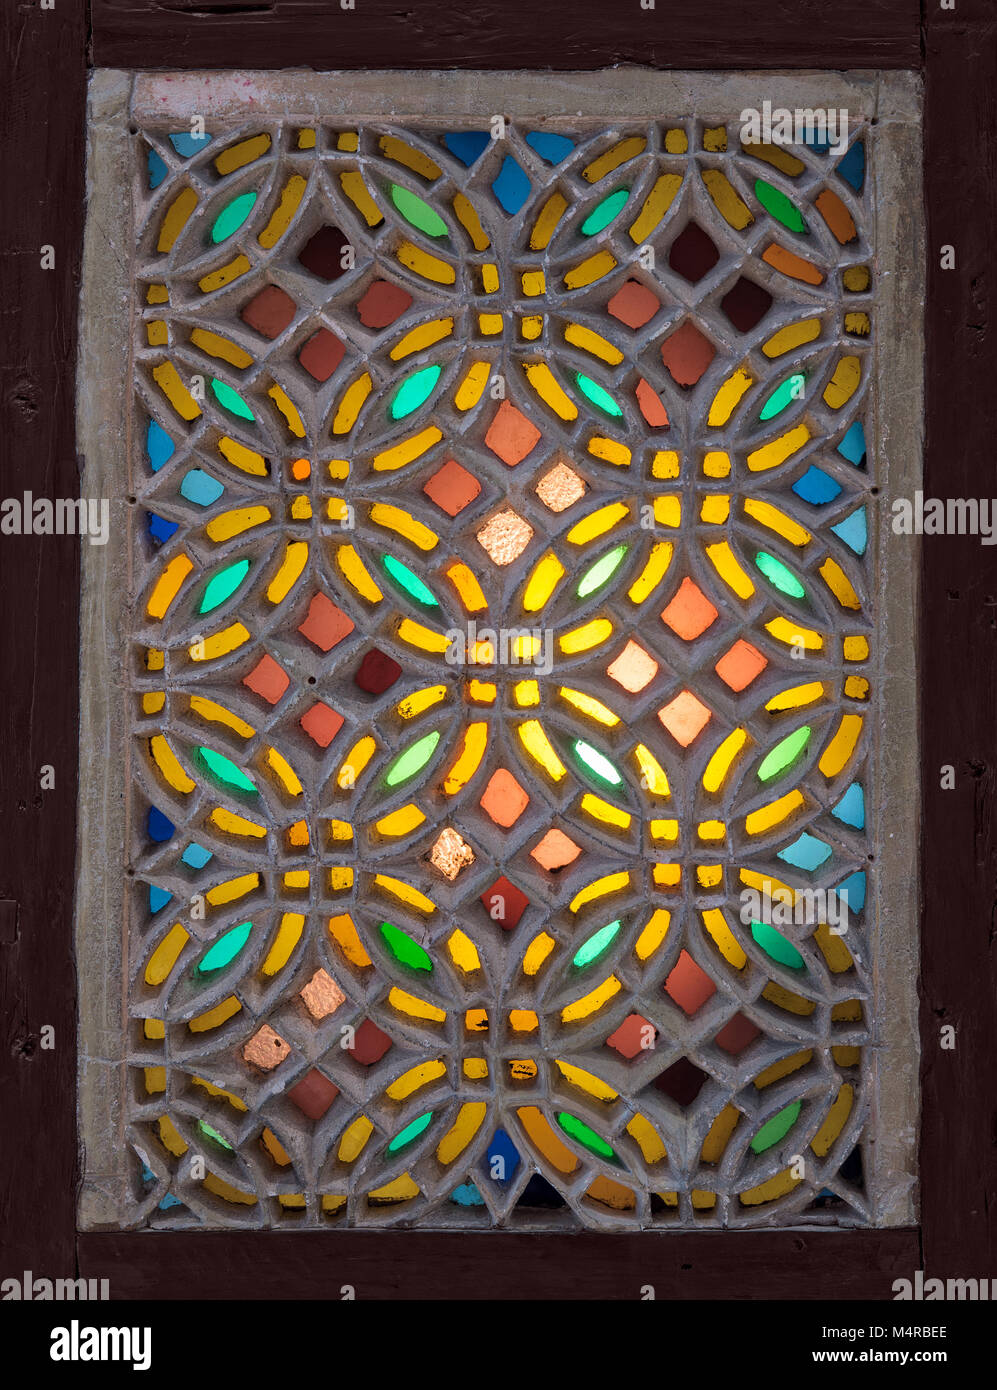 Perforated stucco window decorated with colorful stain glass with geometrical circular patterns, one of the traditions - Stock Image